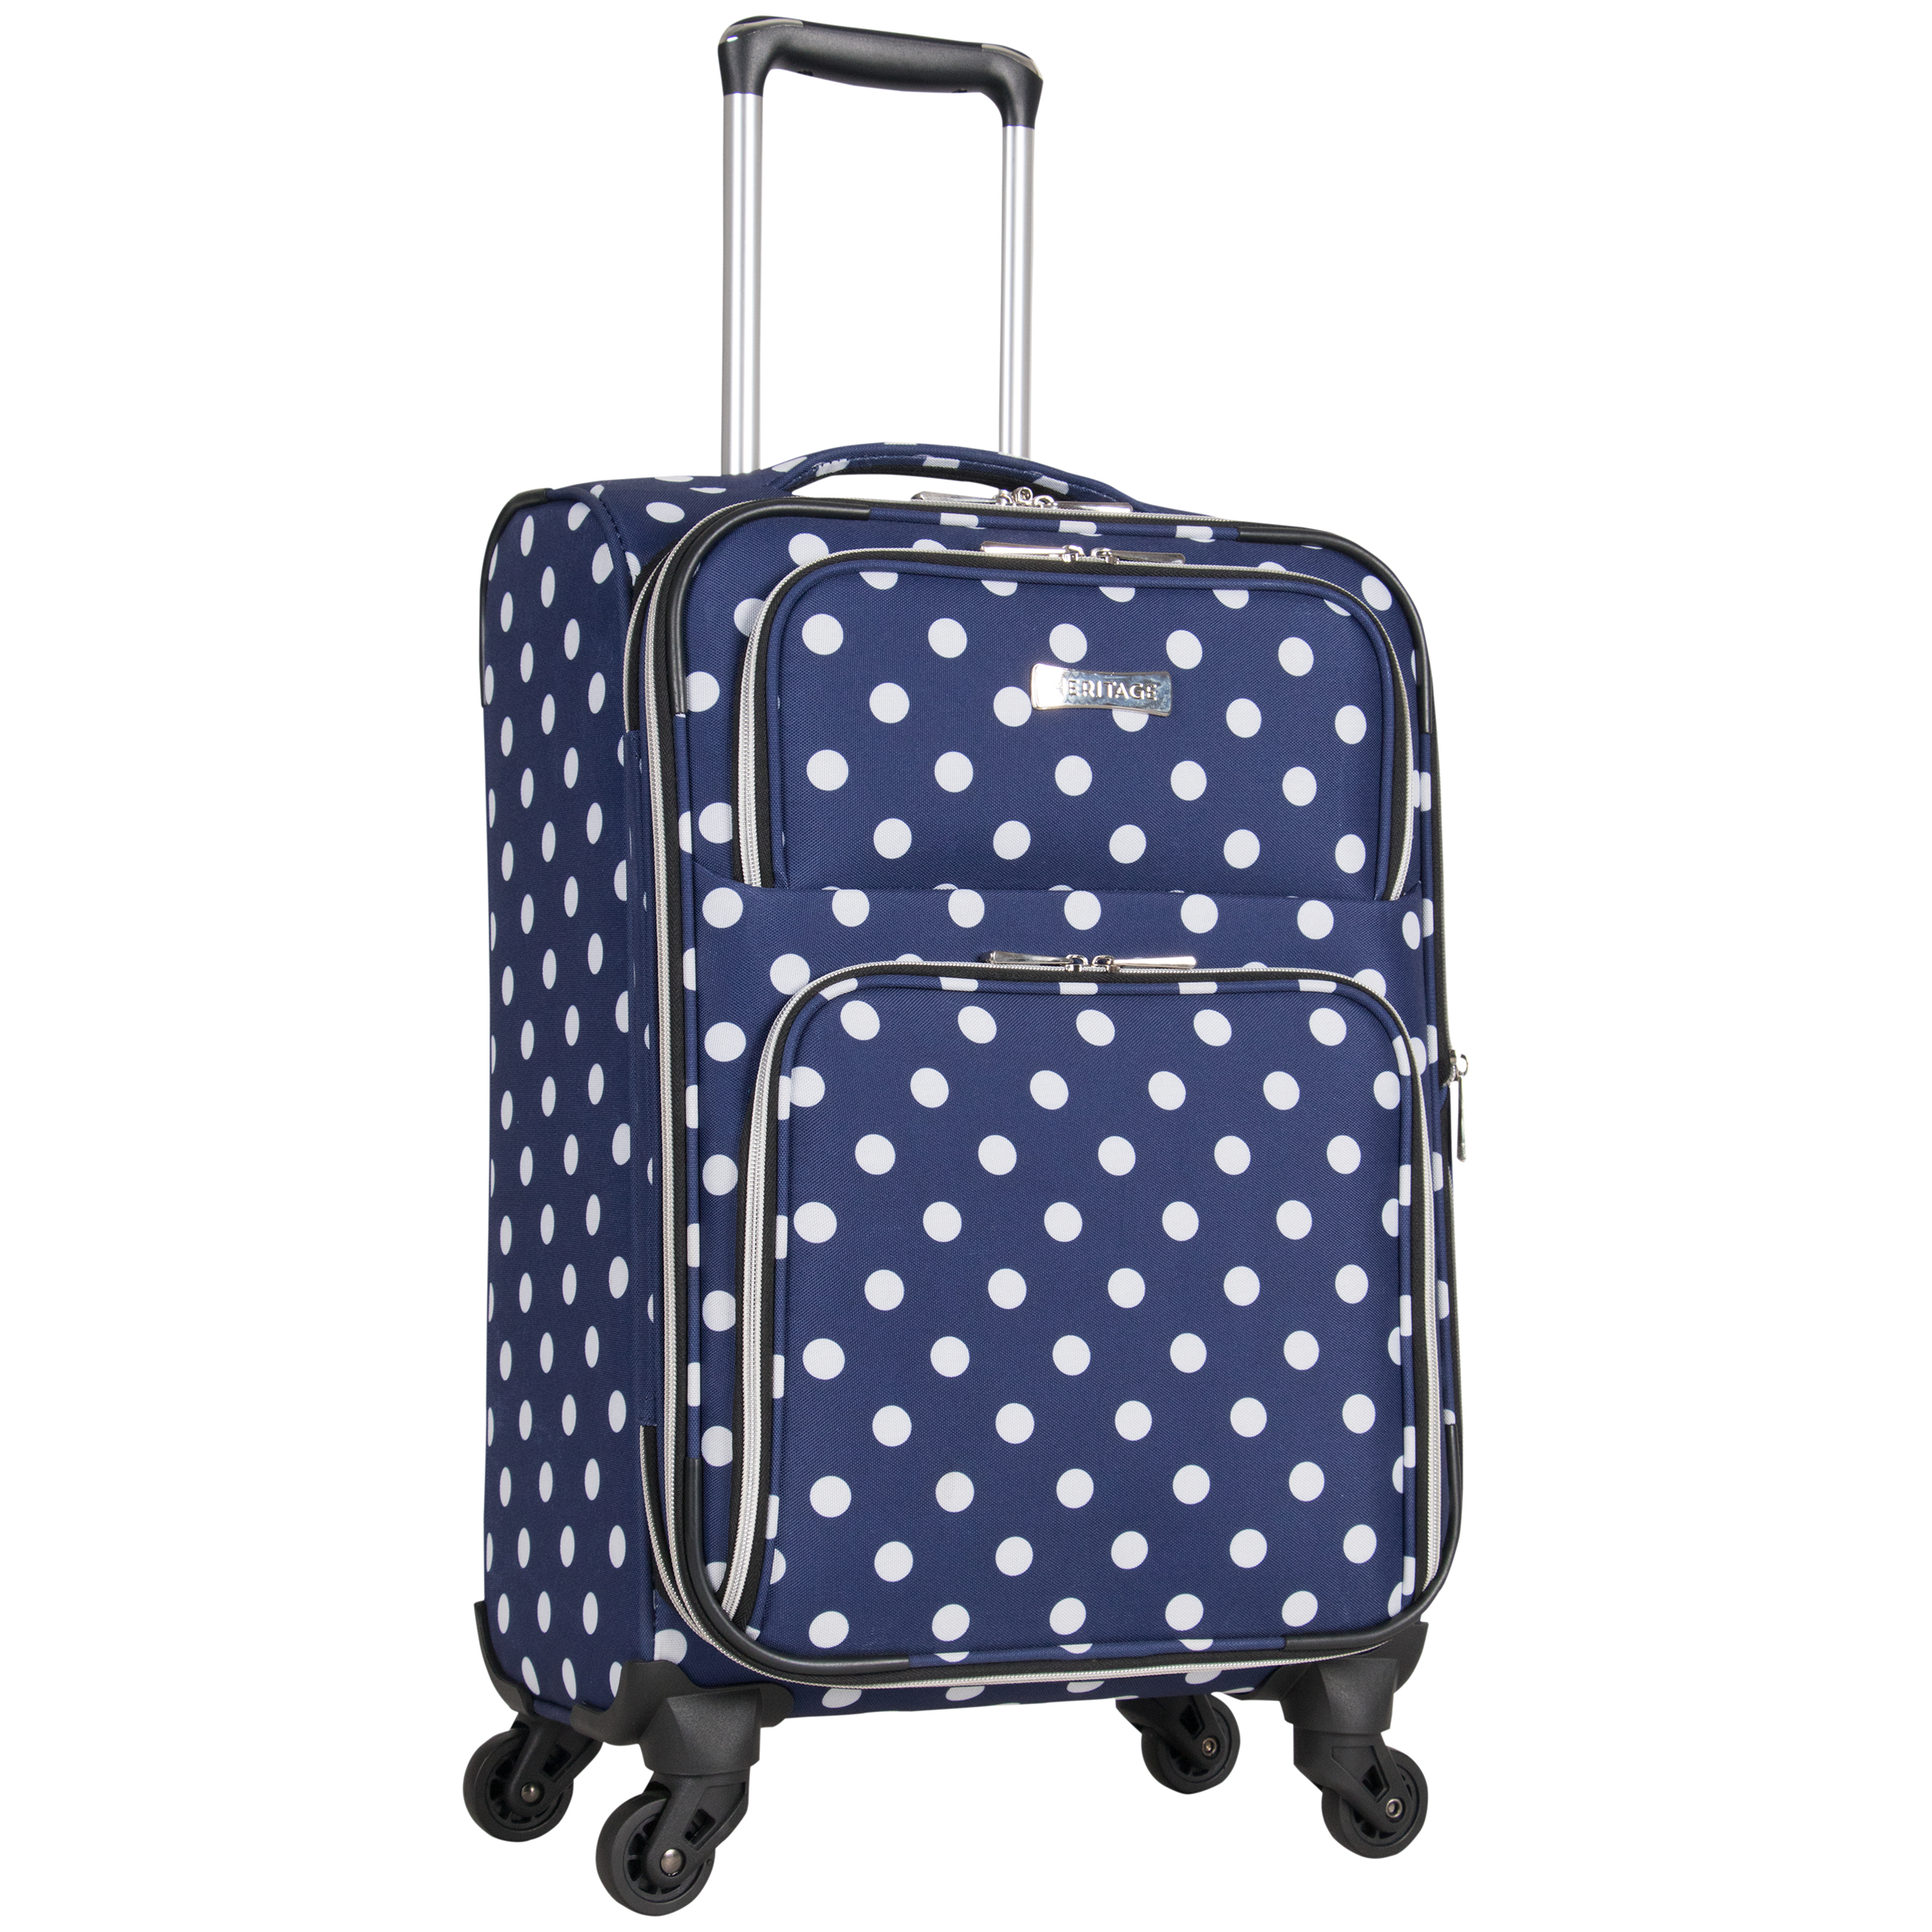 Heritage 20-Inch Lightweight Polka Dot Printed Expandable 4-Wheel Upright Carry-On Luggage - Navy / White Polka Dot